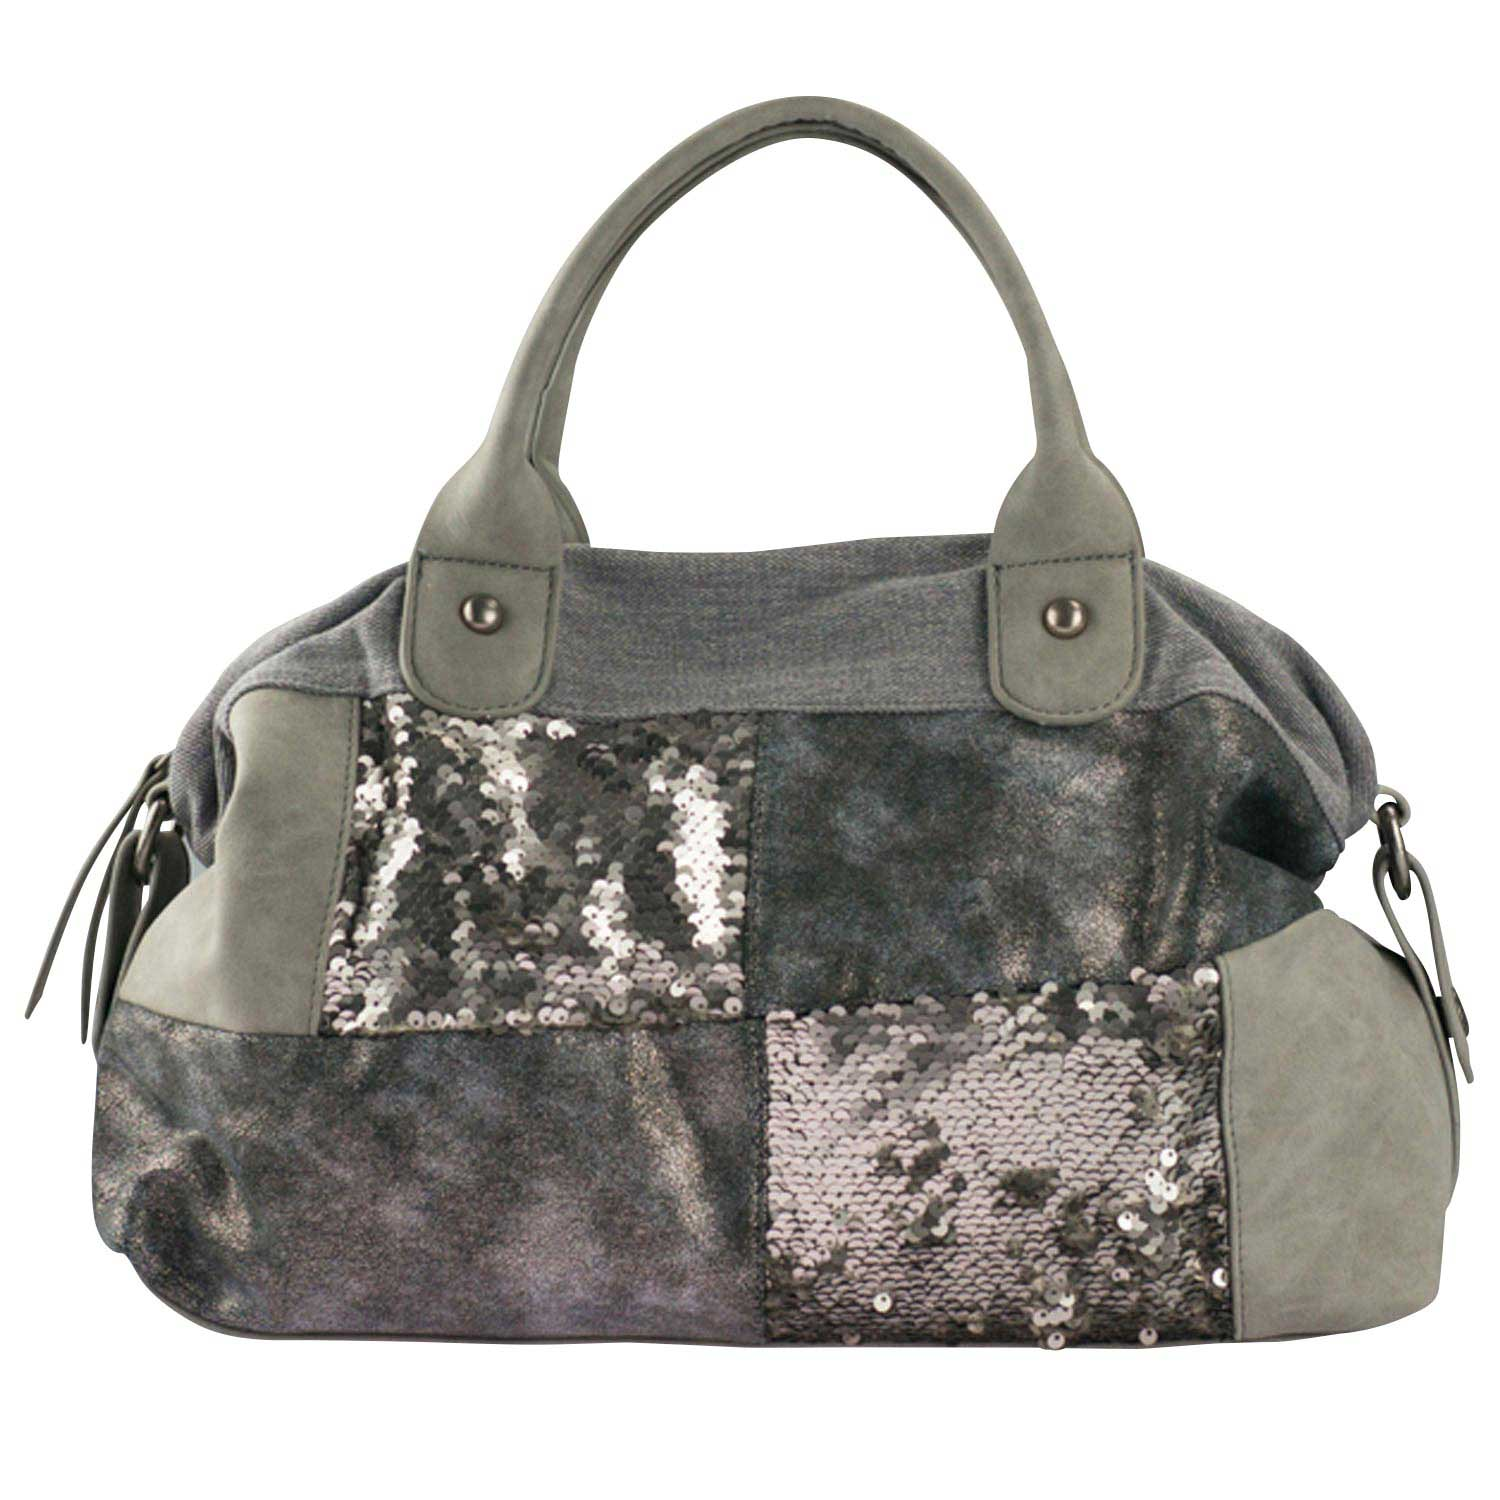 Louiz & Lou Light Up Handtasche Silver 2272-90